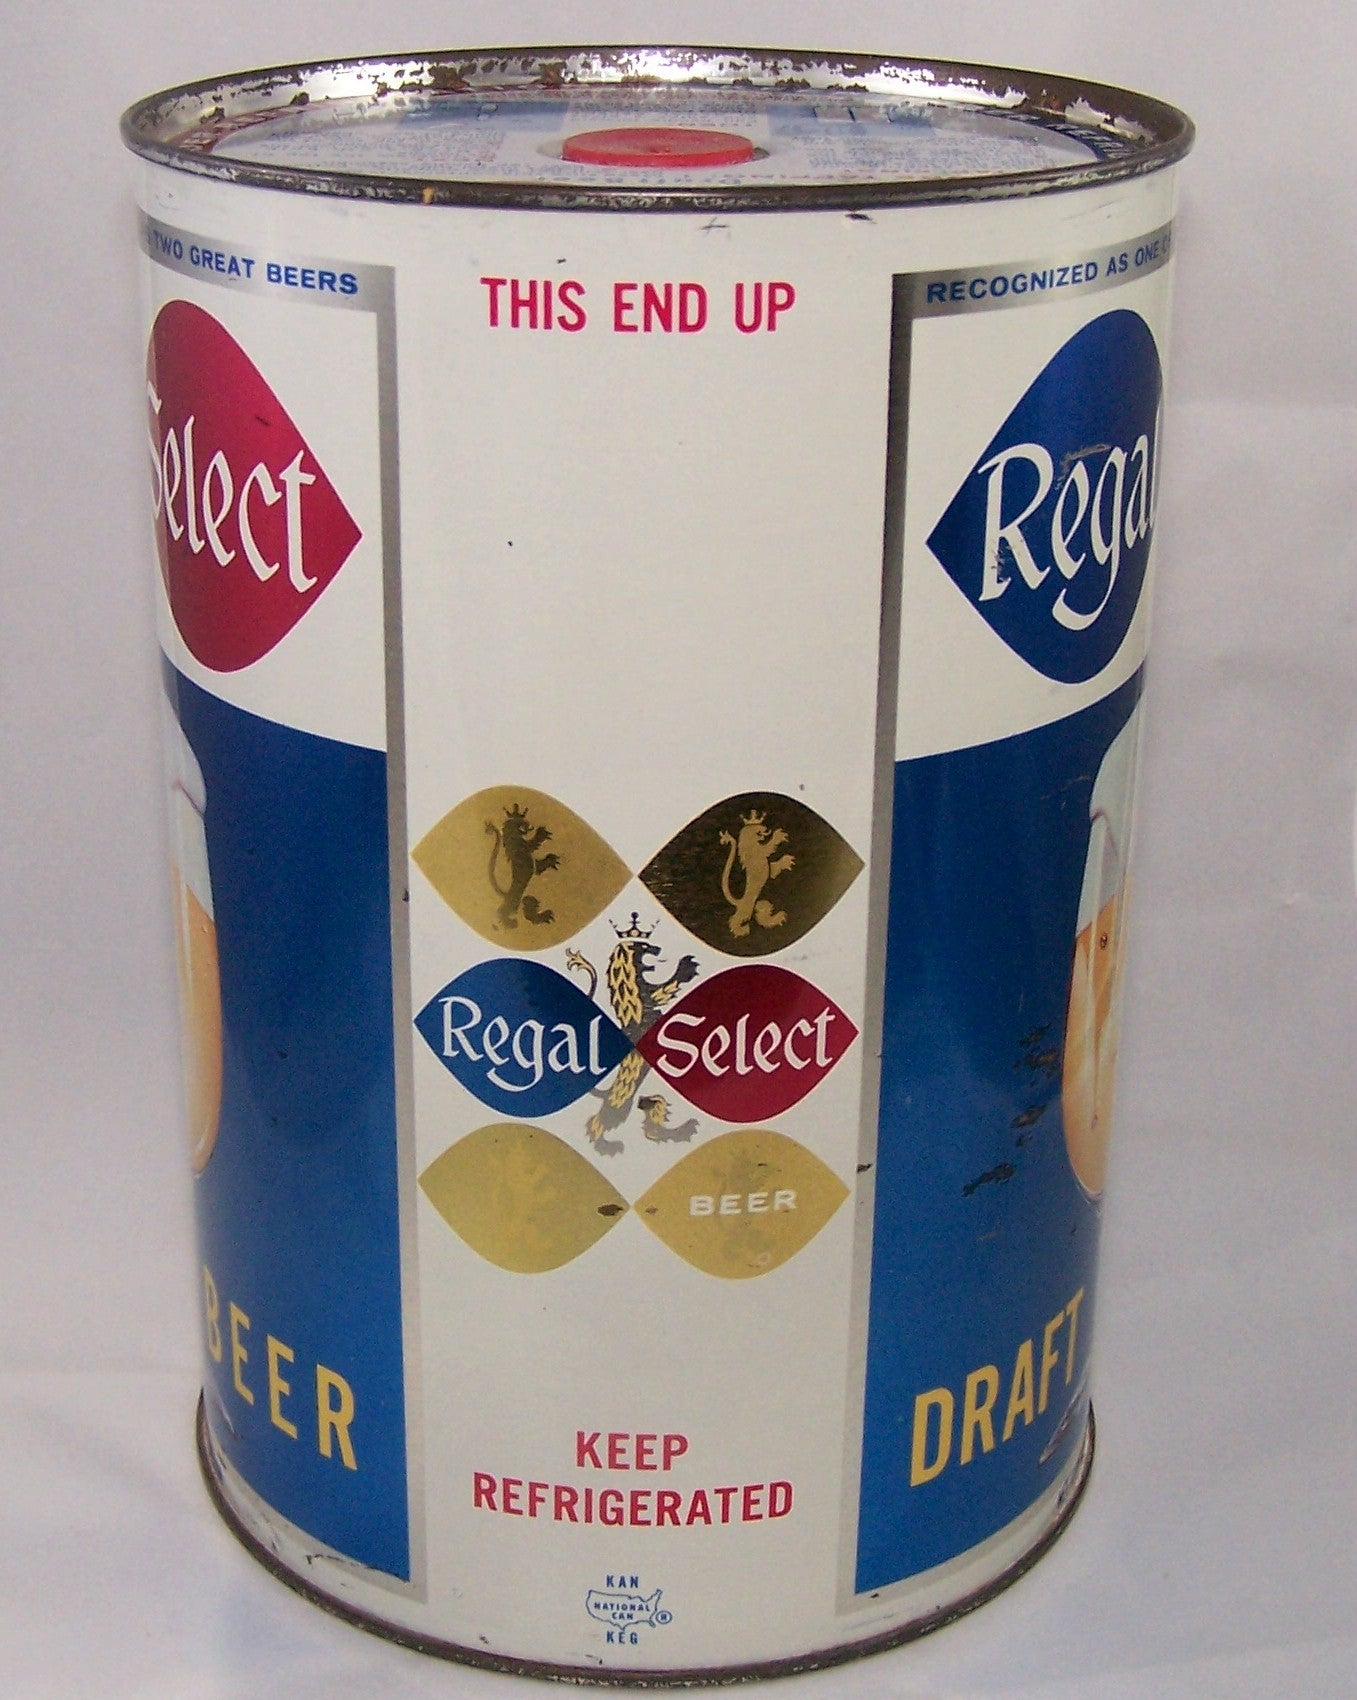 Regal Select Draft Beer, USBC 246-5, Grade 1 to 1/1+ Sold on 01/04/16